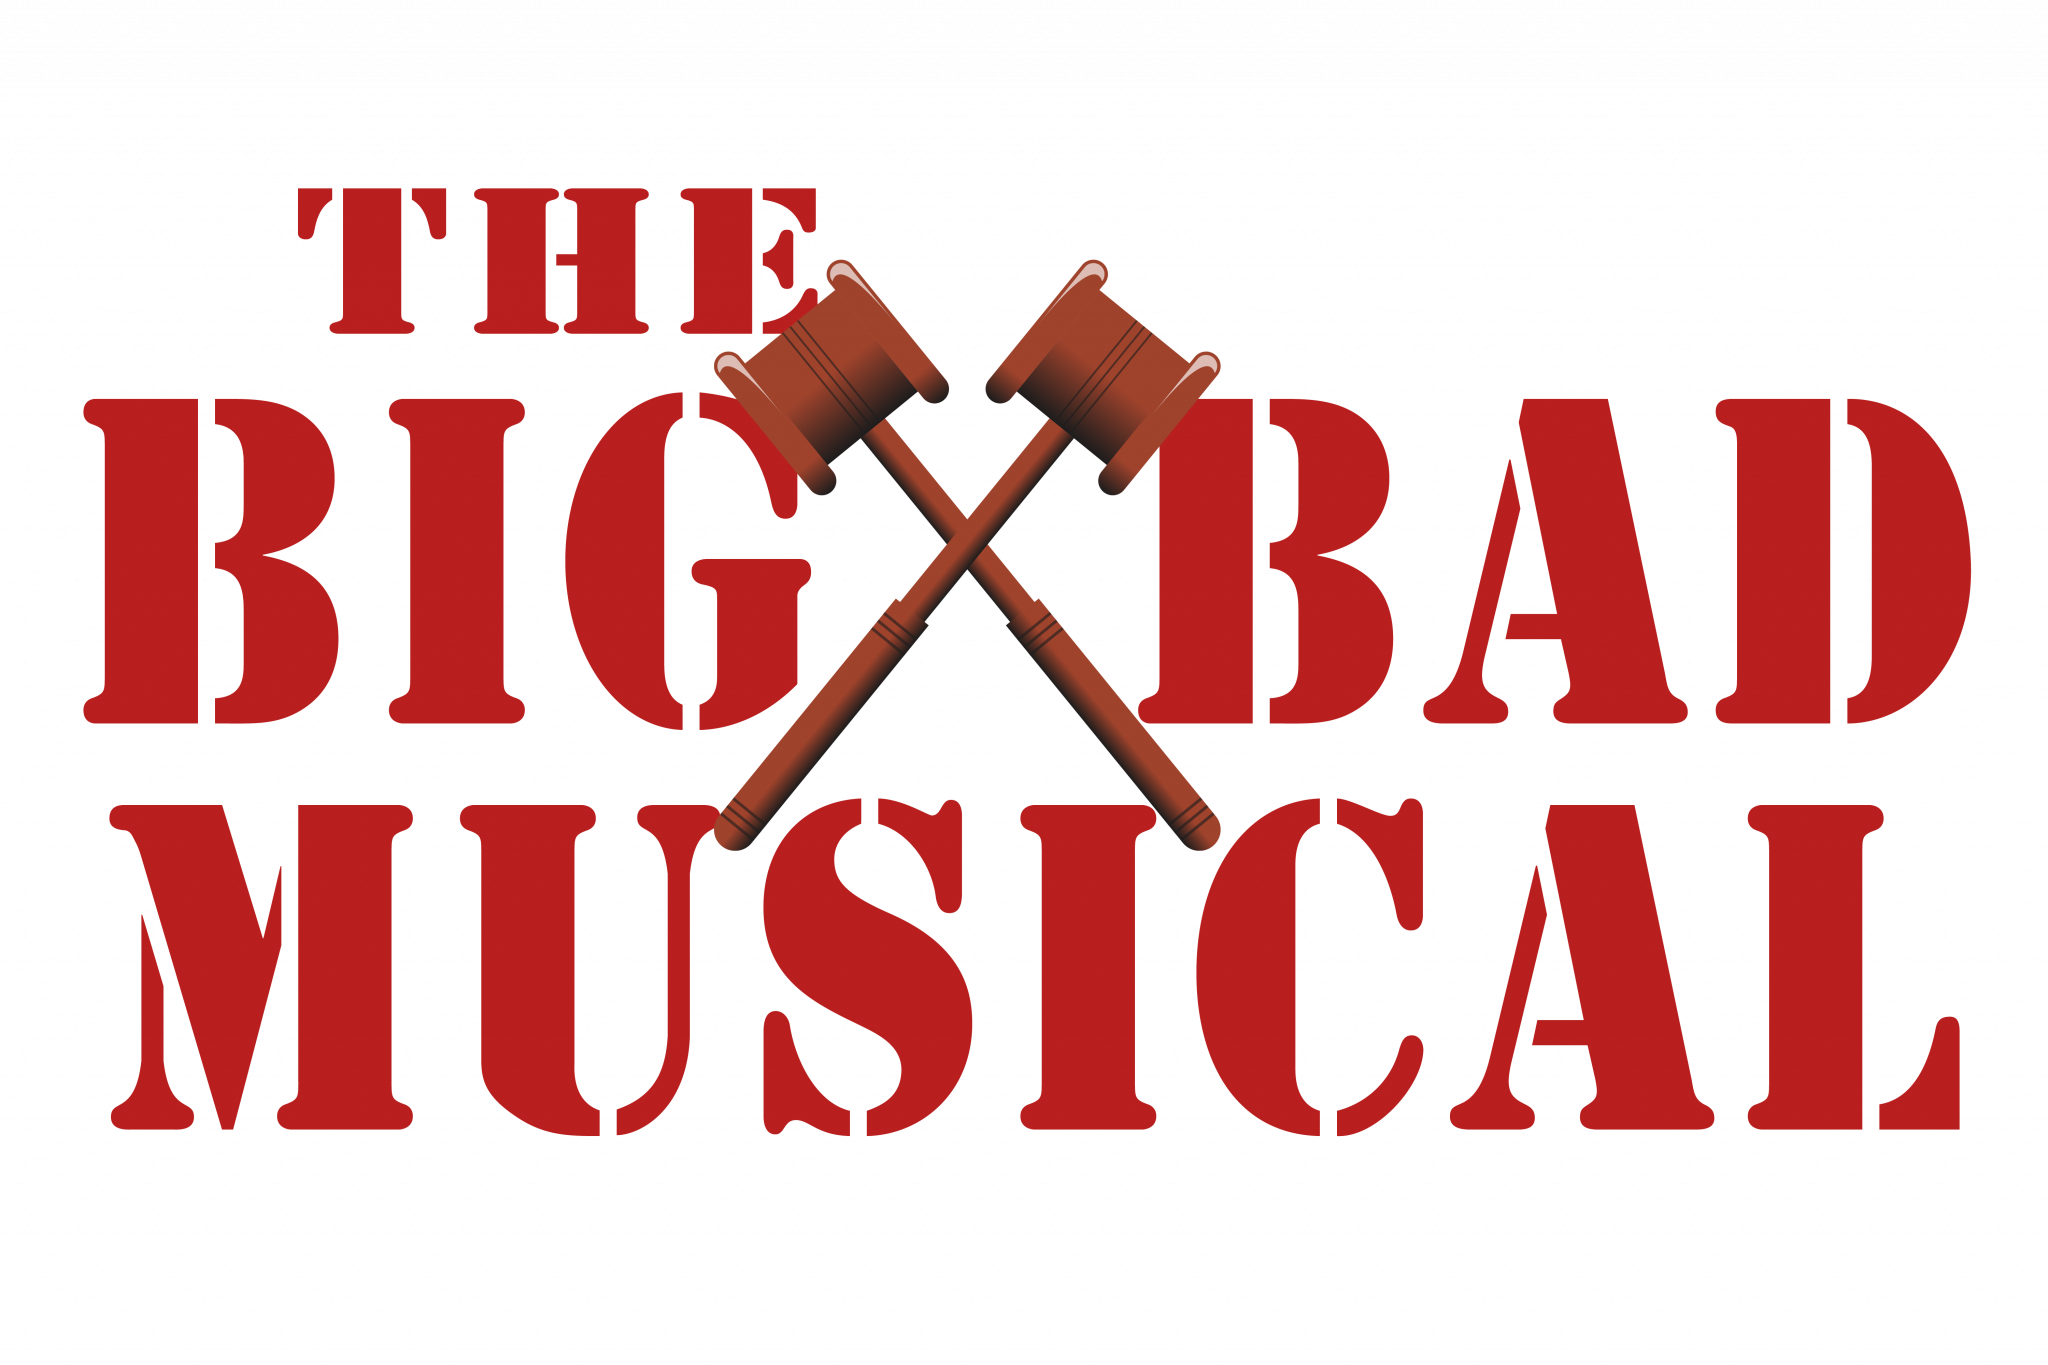 the big bad musical logo